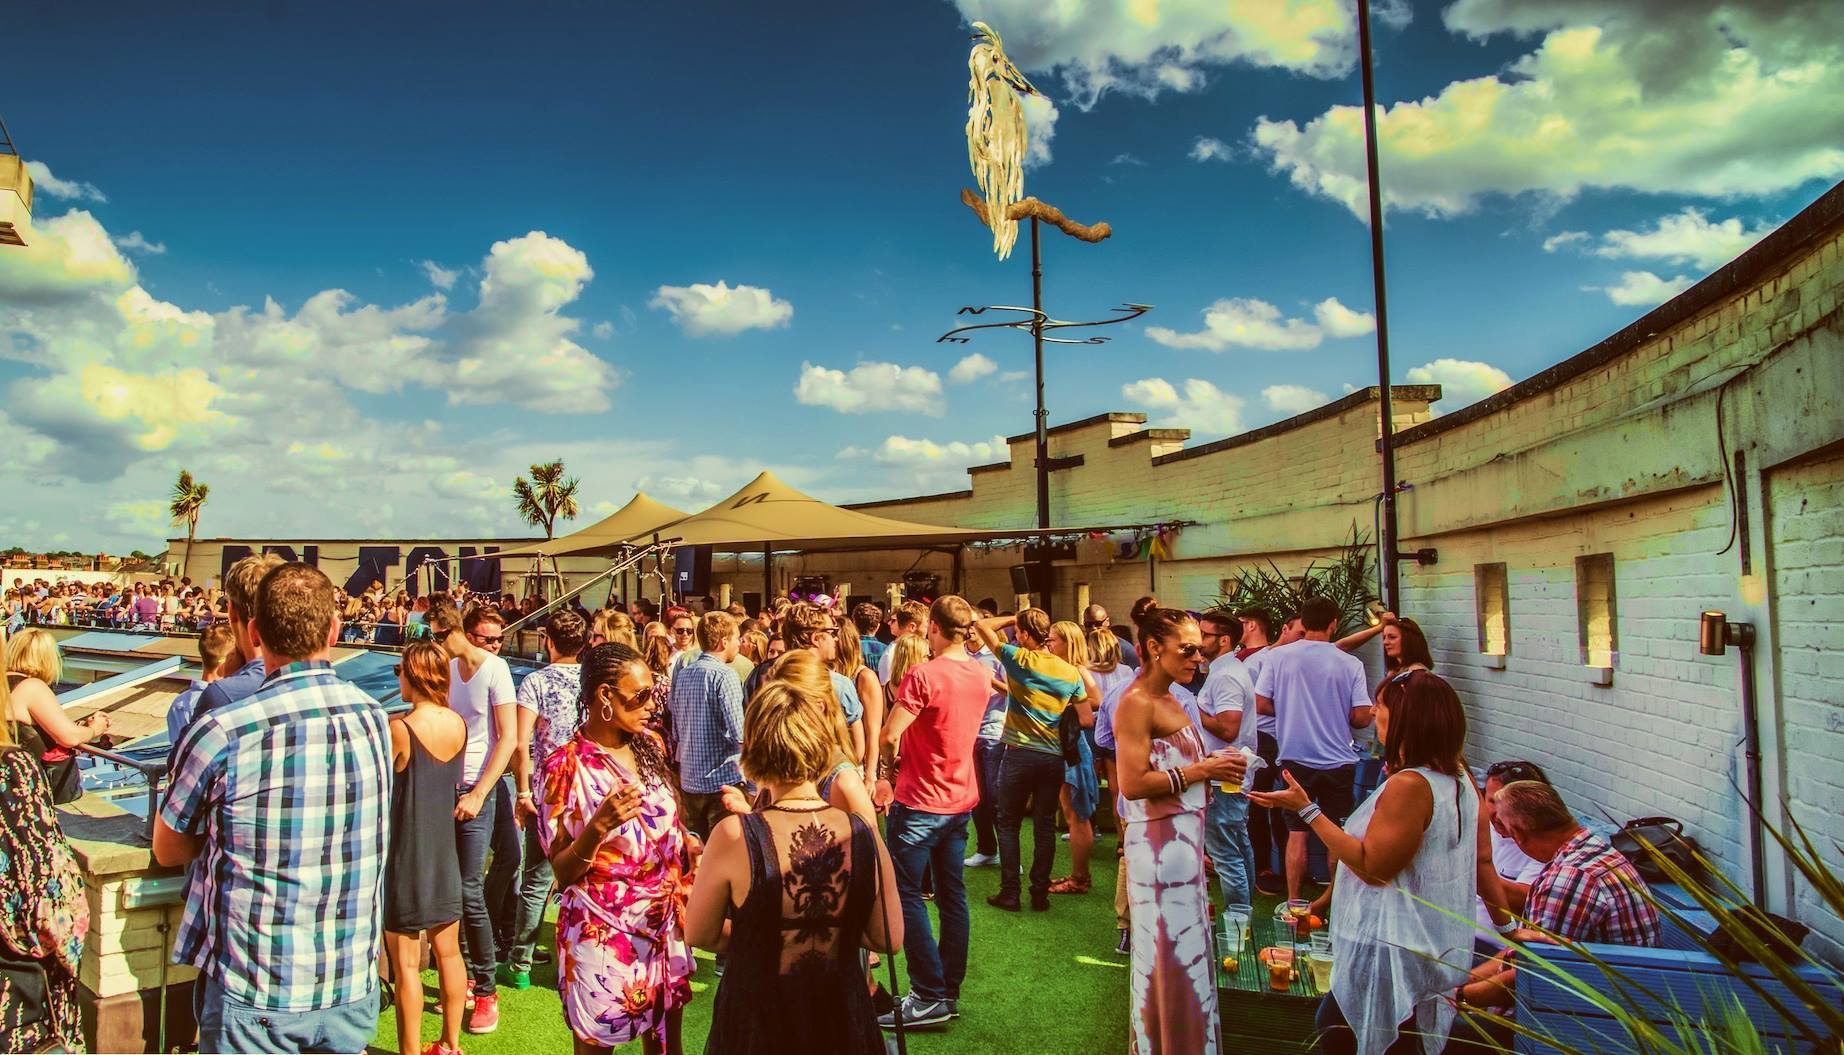 Brixton's Summer Rooftop Disco Party: Byday Bynight